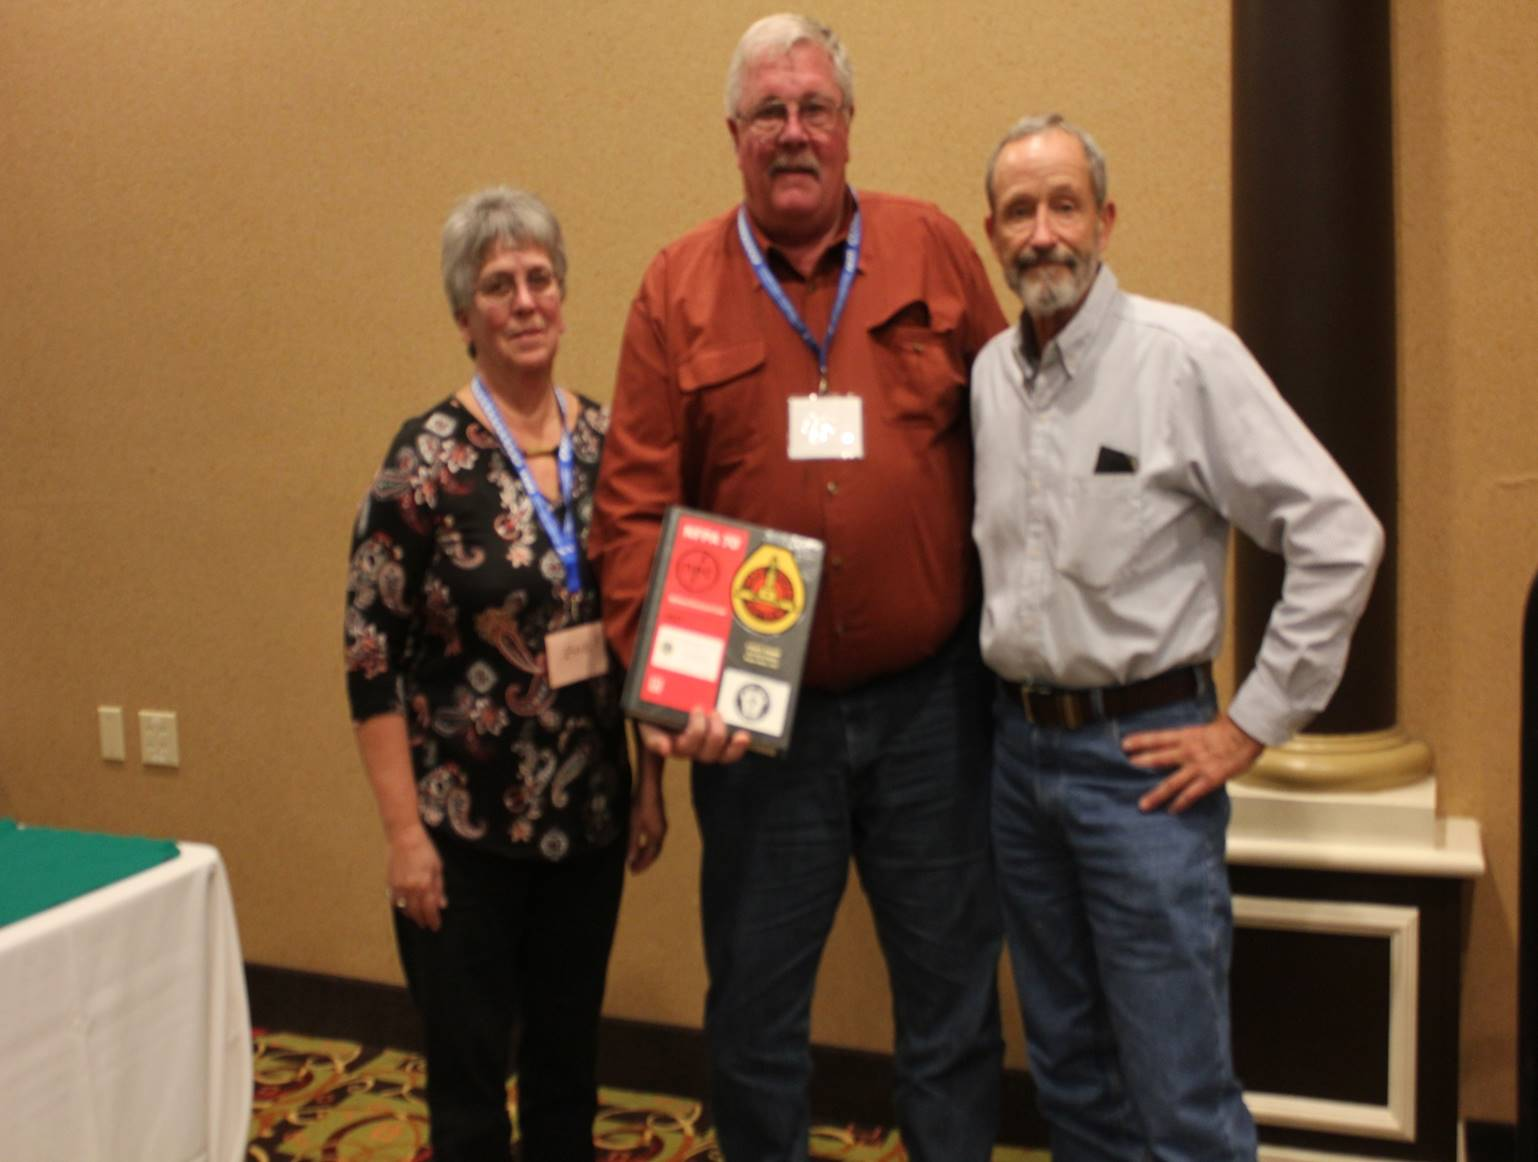 Our Western Section President Dwight Kramer and wife Zoe being presented with the special personalized hard bound National Electrical Code book. From the Nebraska Chapter to you, Thank you!